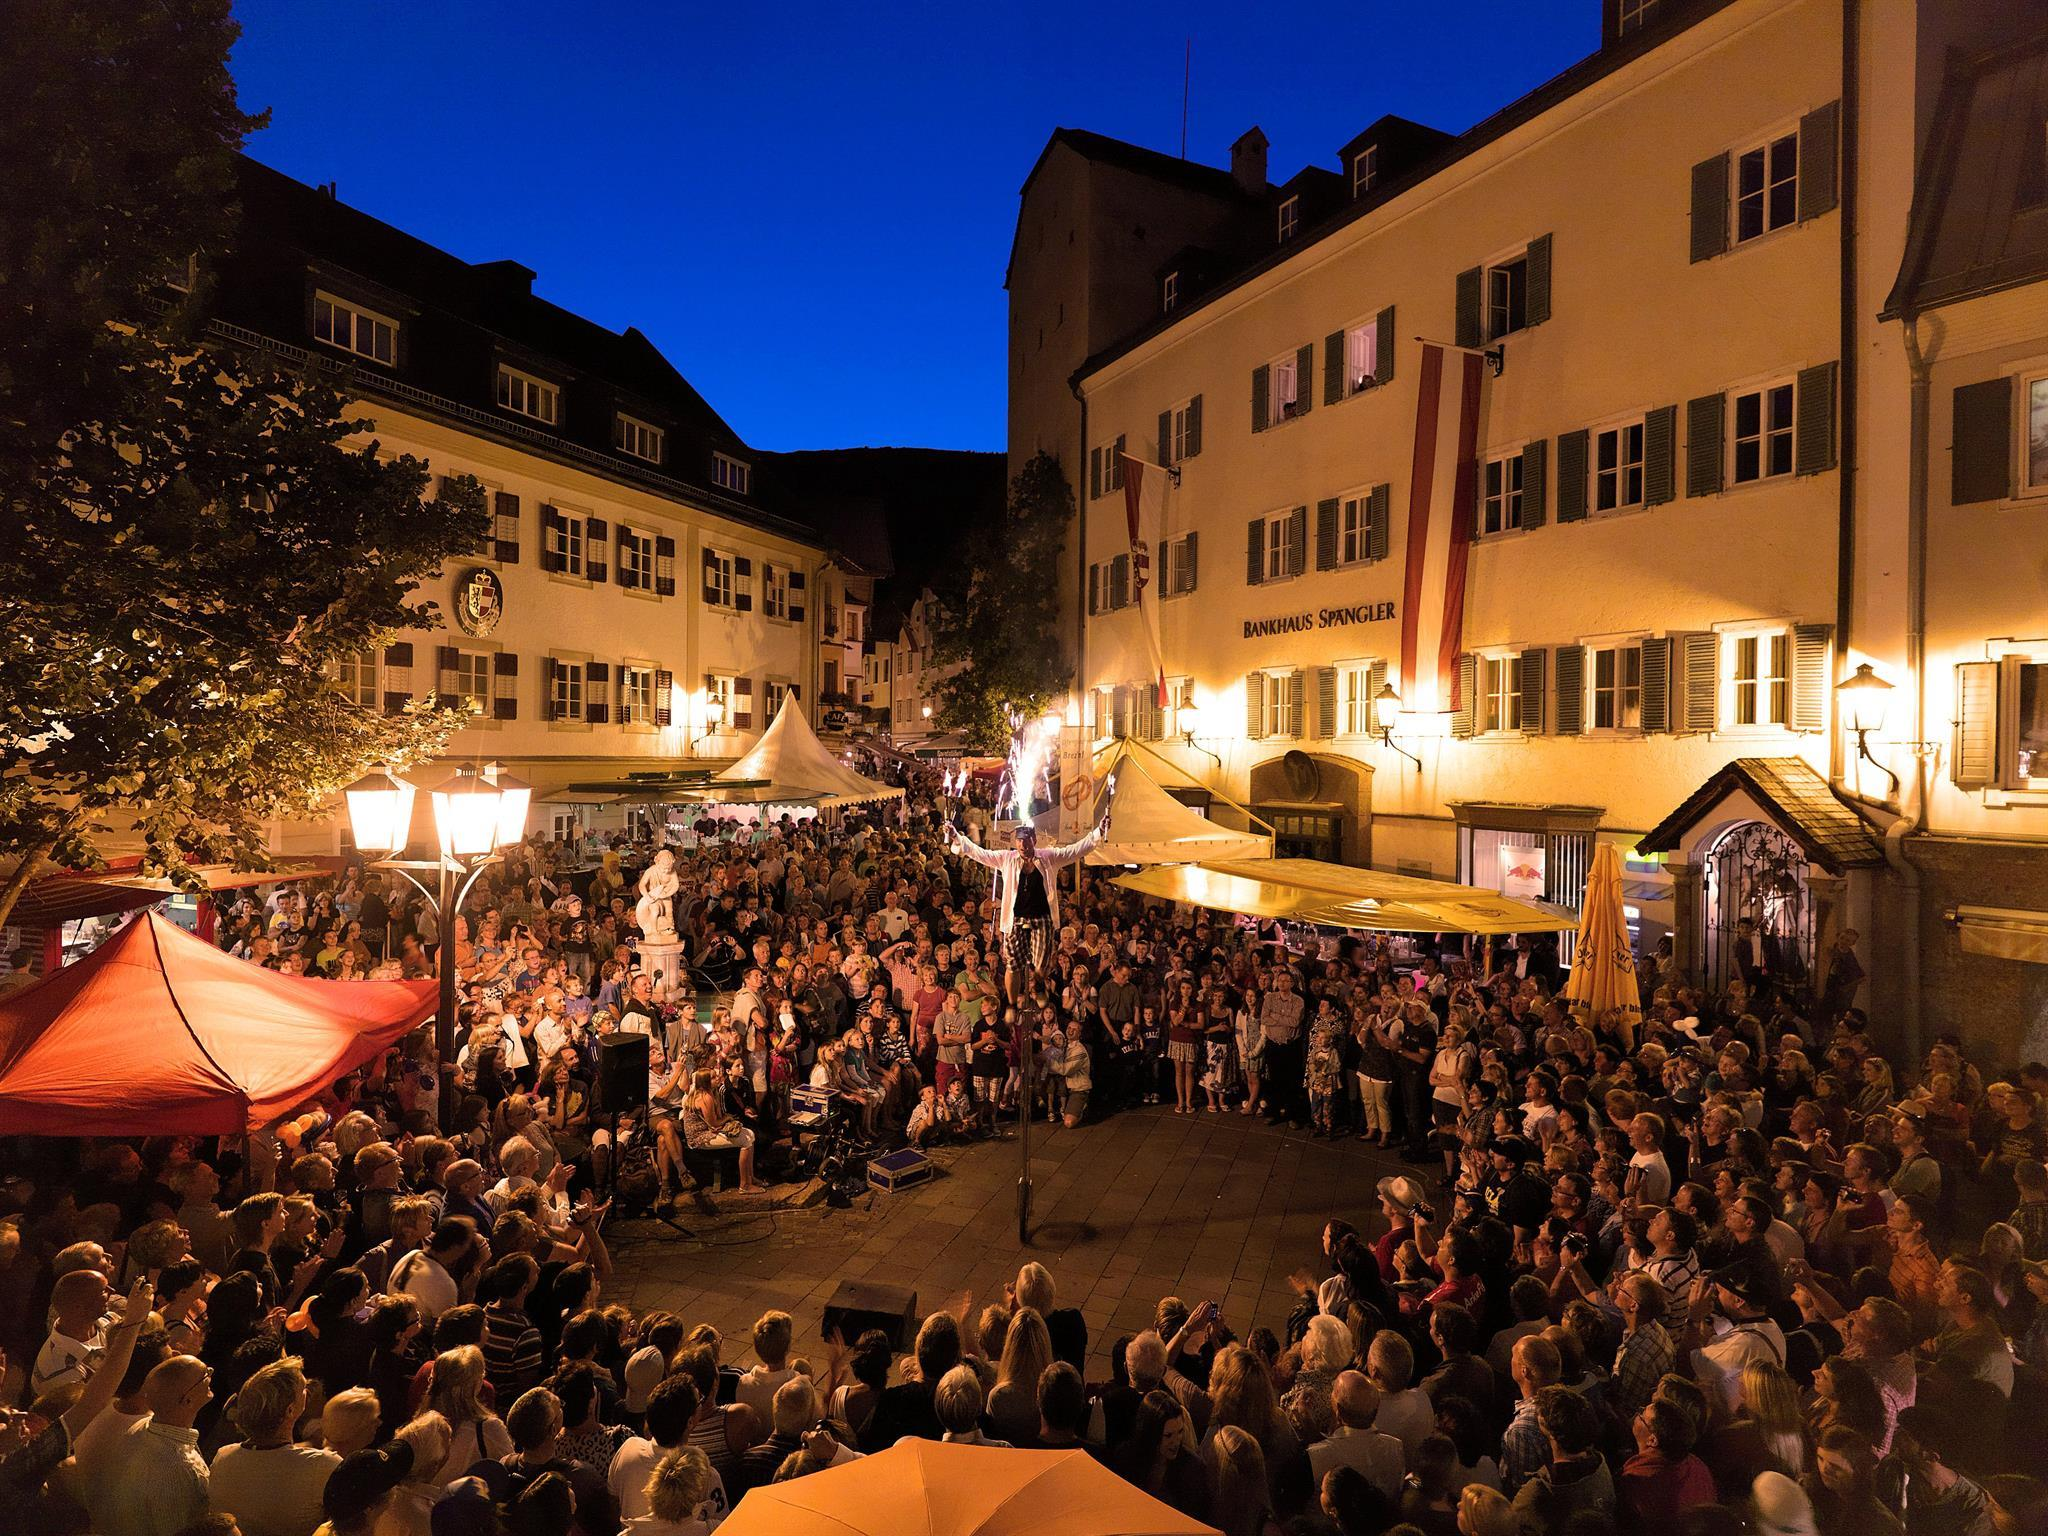 Zell SummerNightFestival - 05/08/2020, from 7:00 PM